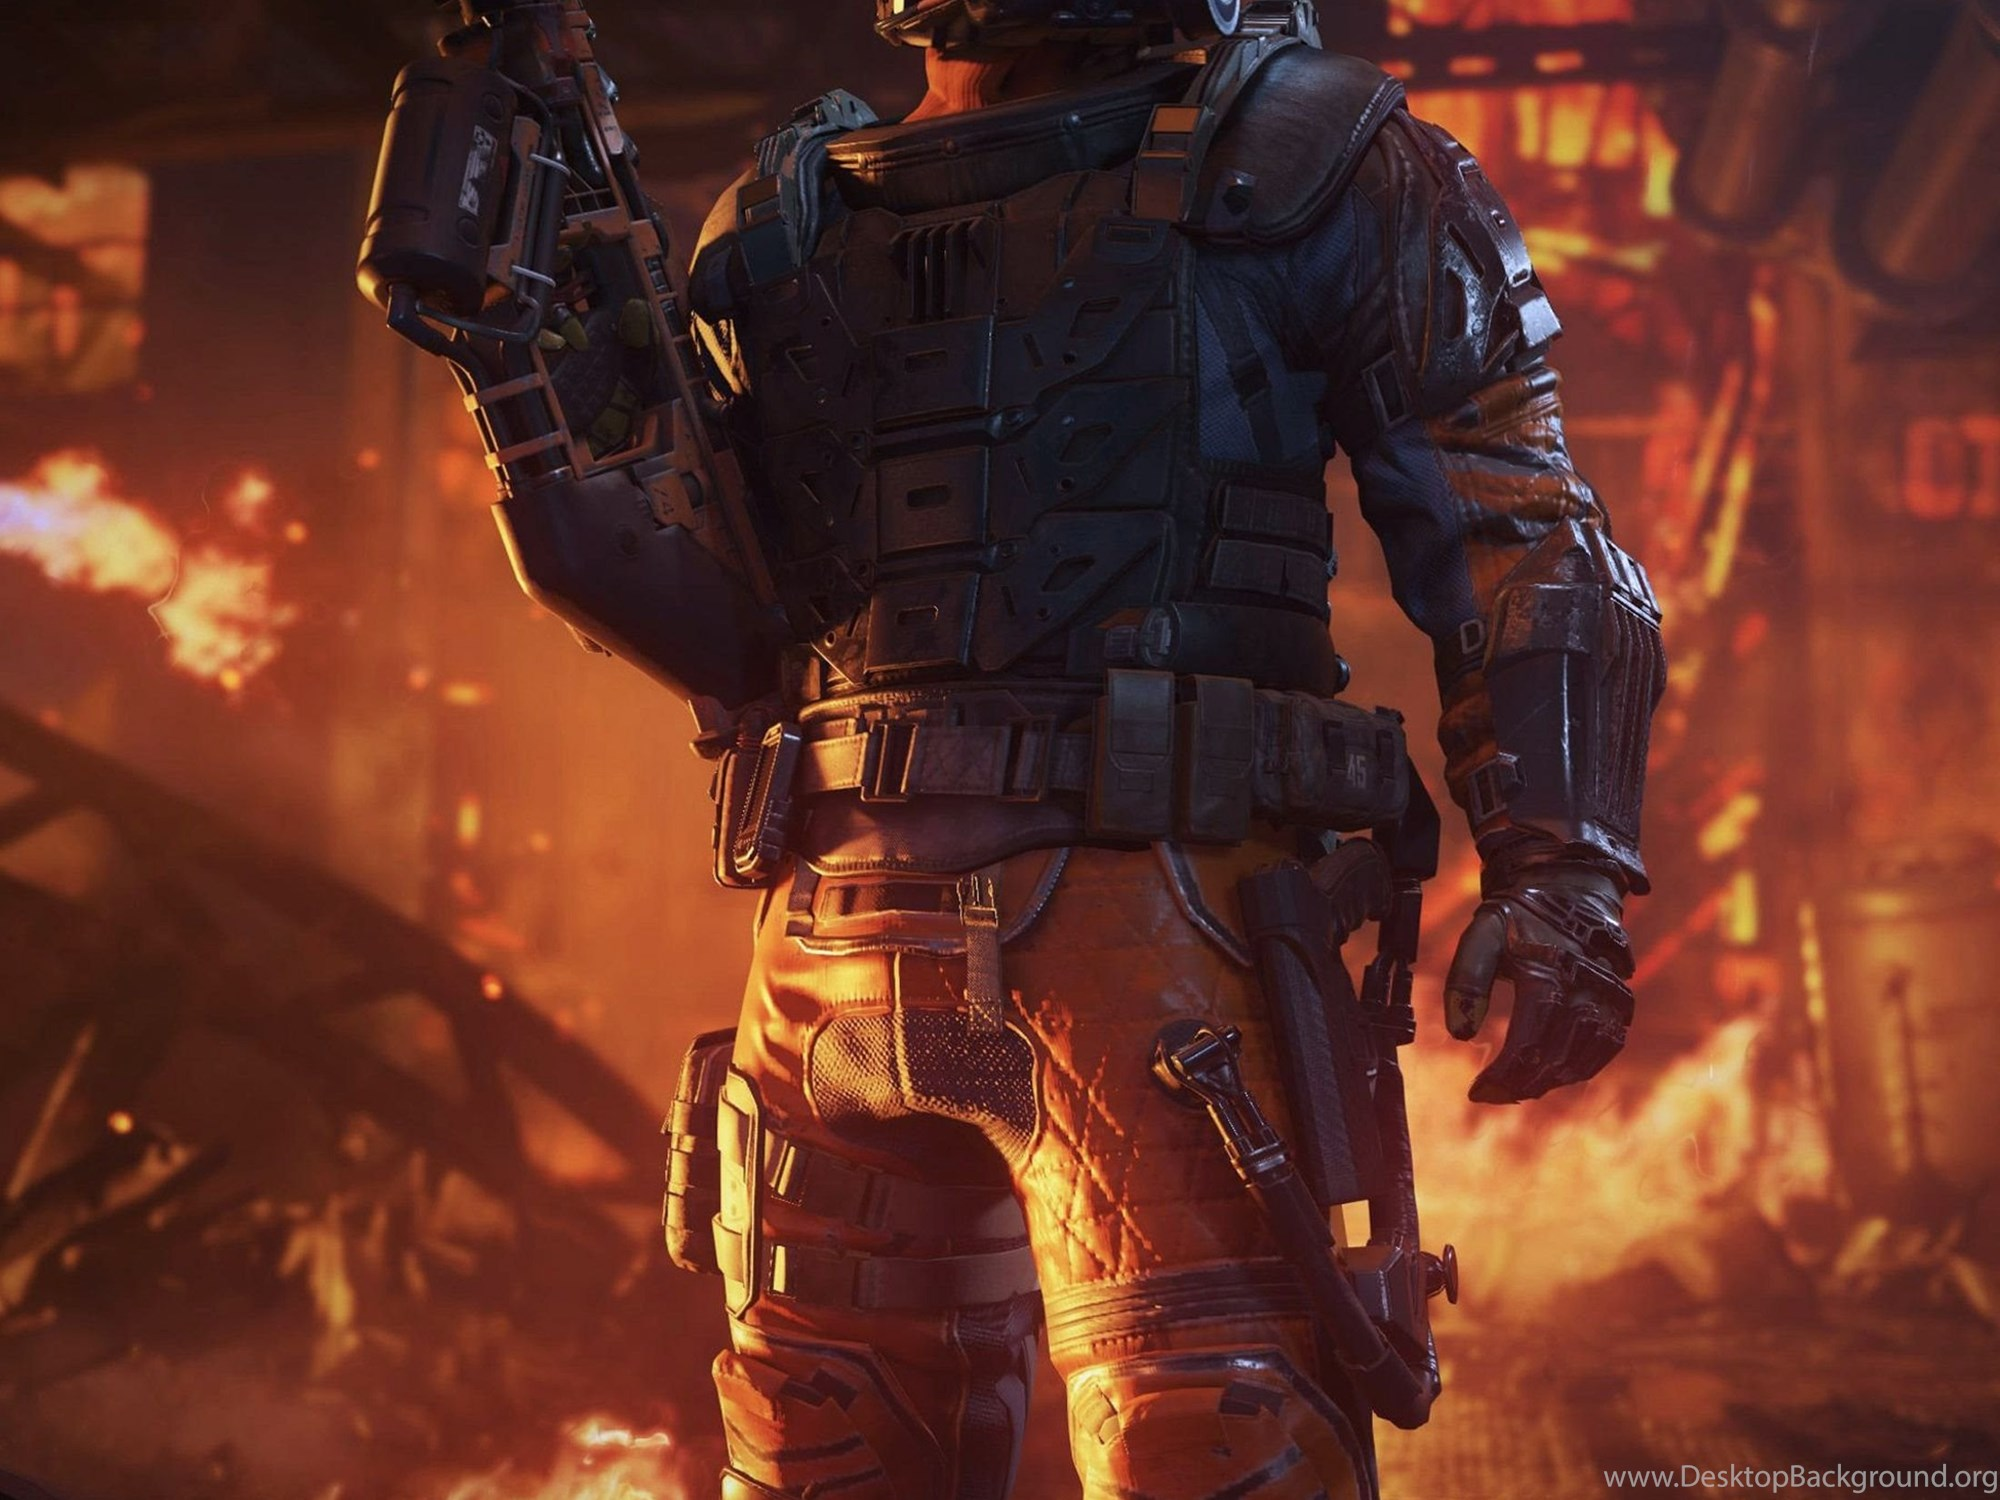 Epic Call Of Duty Black Ops 3 Wallpapers For Mobile Phones Call